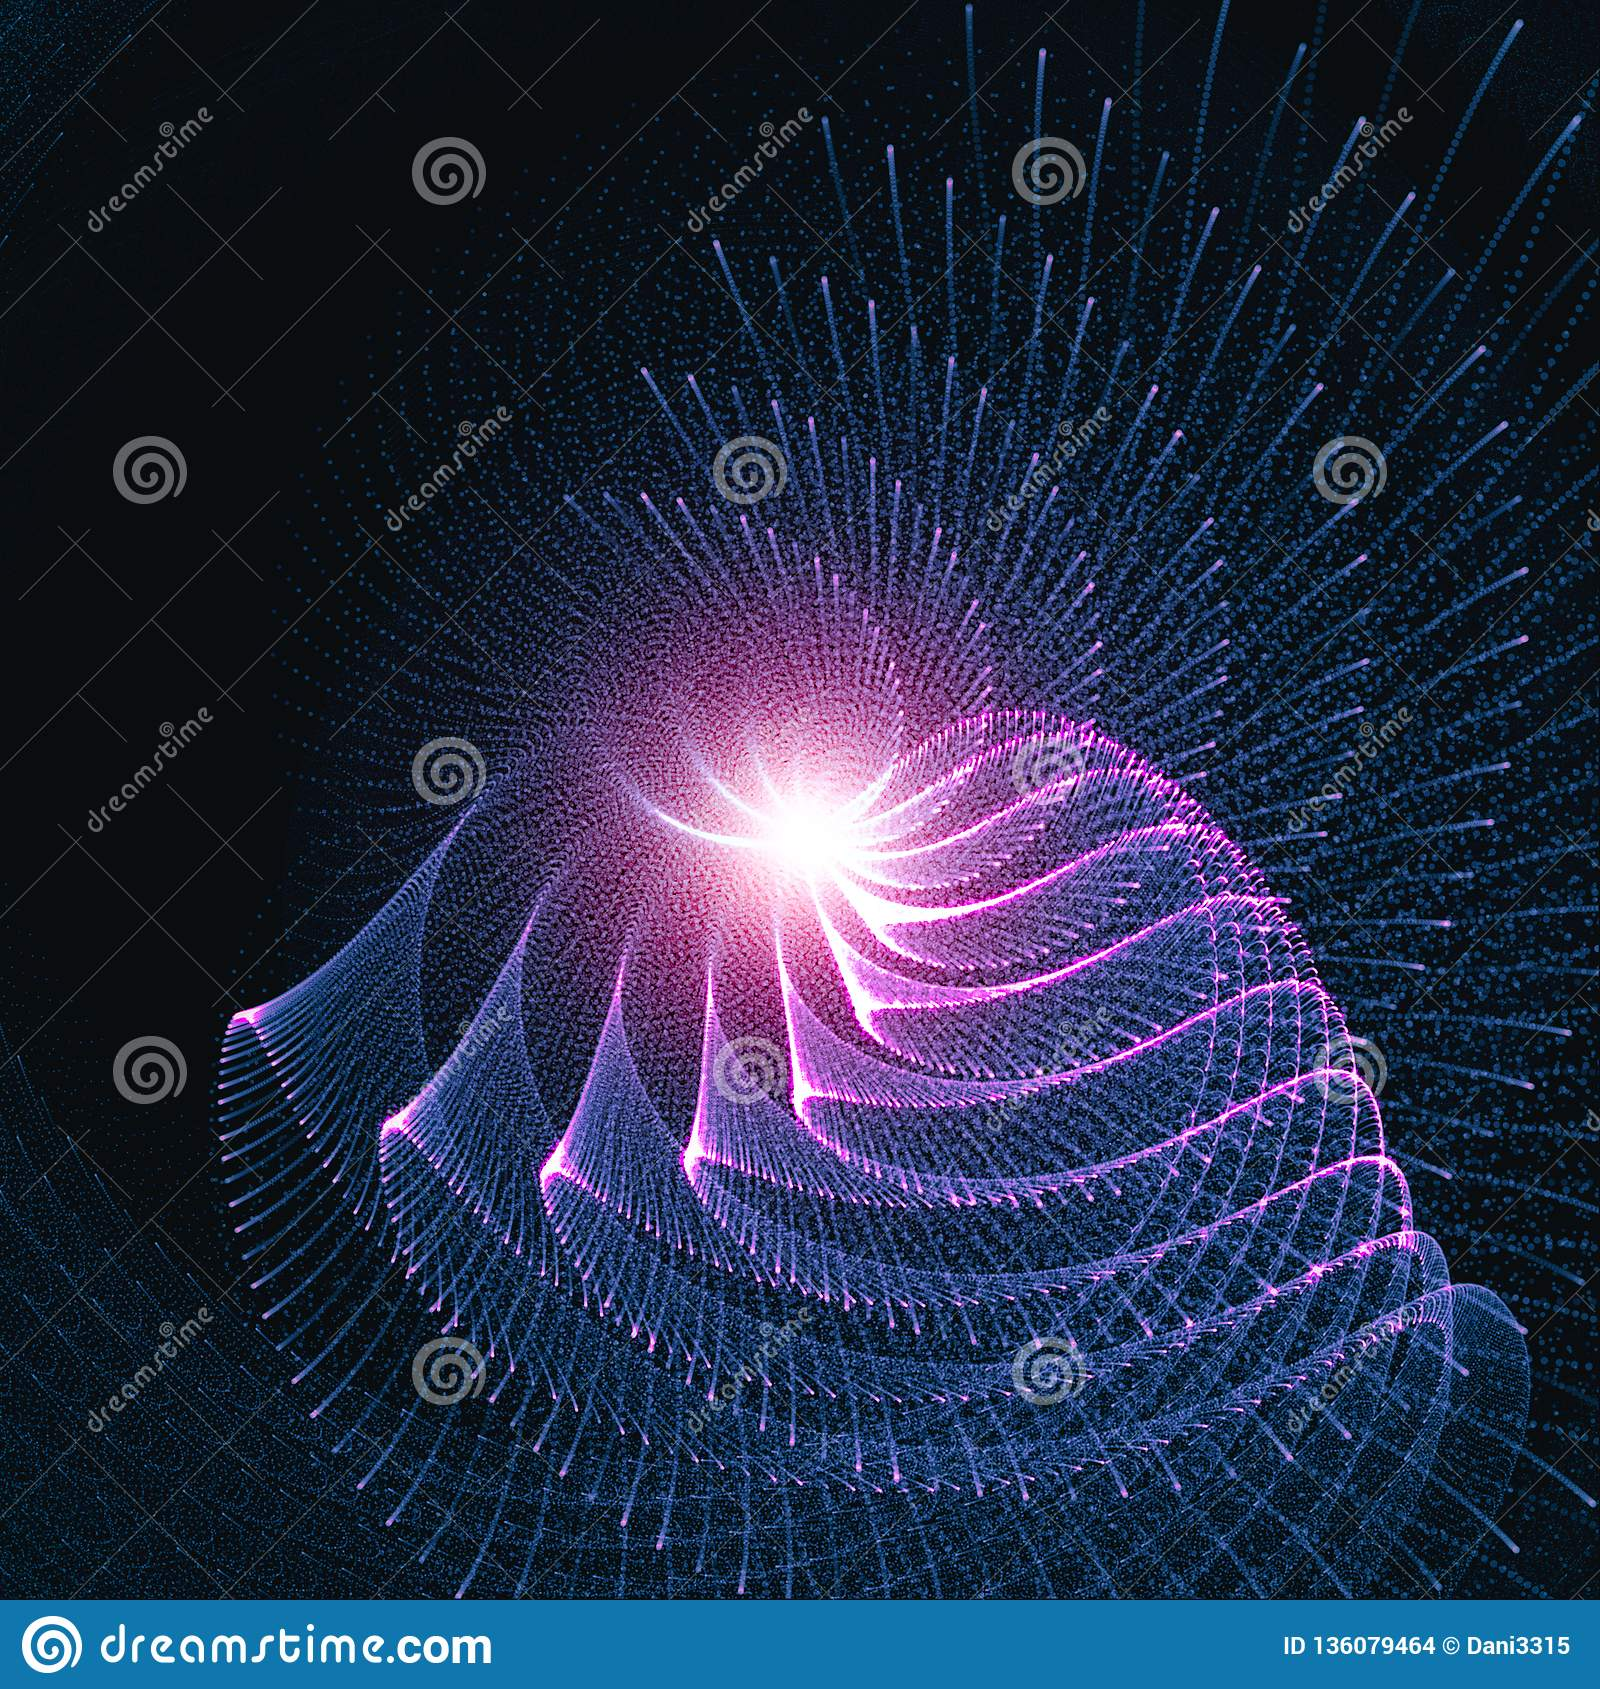 Abstract Glowing Curved Lines Background. Rays Of Light Flowing In Circular Motion